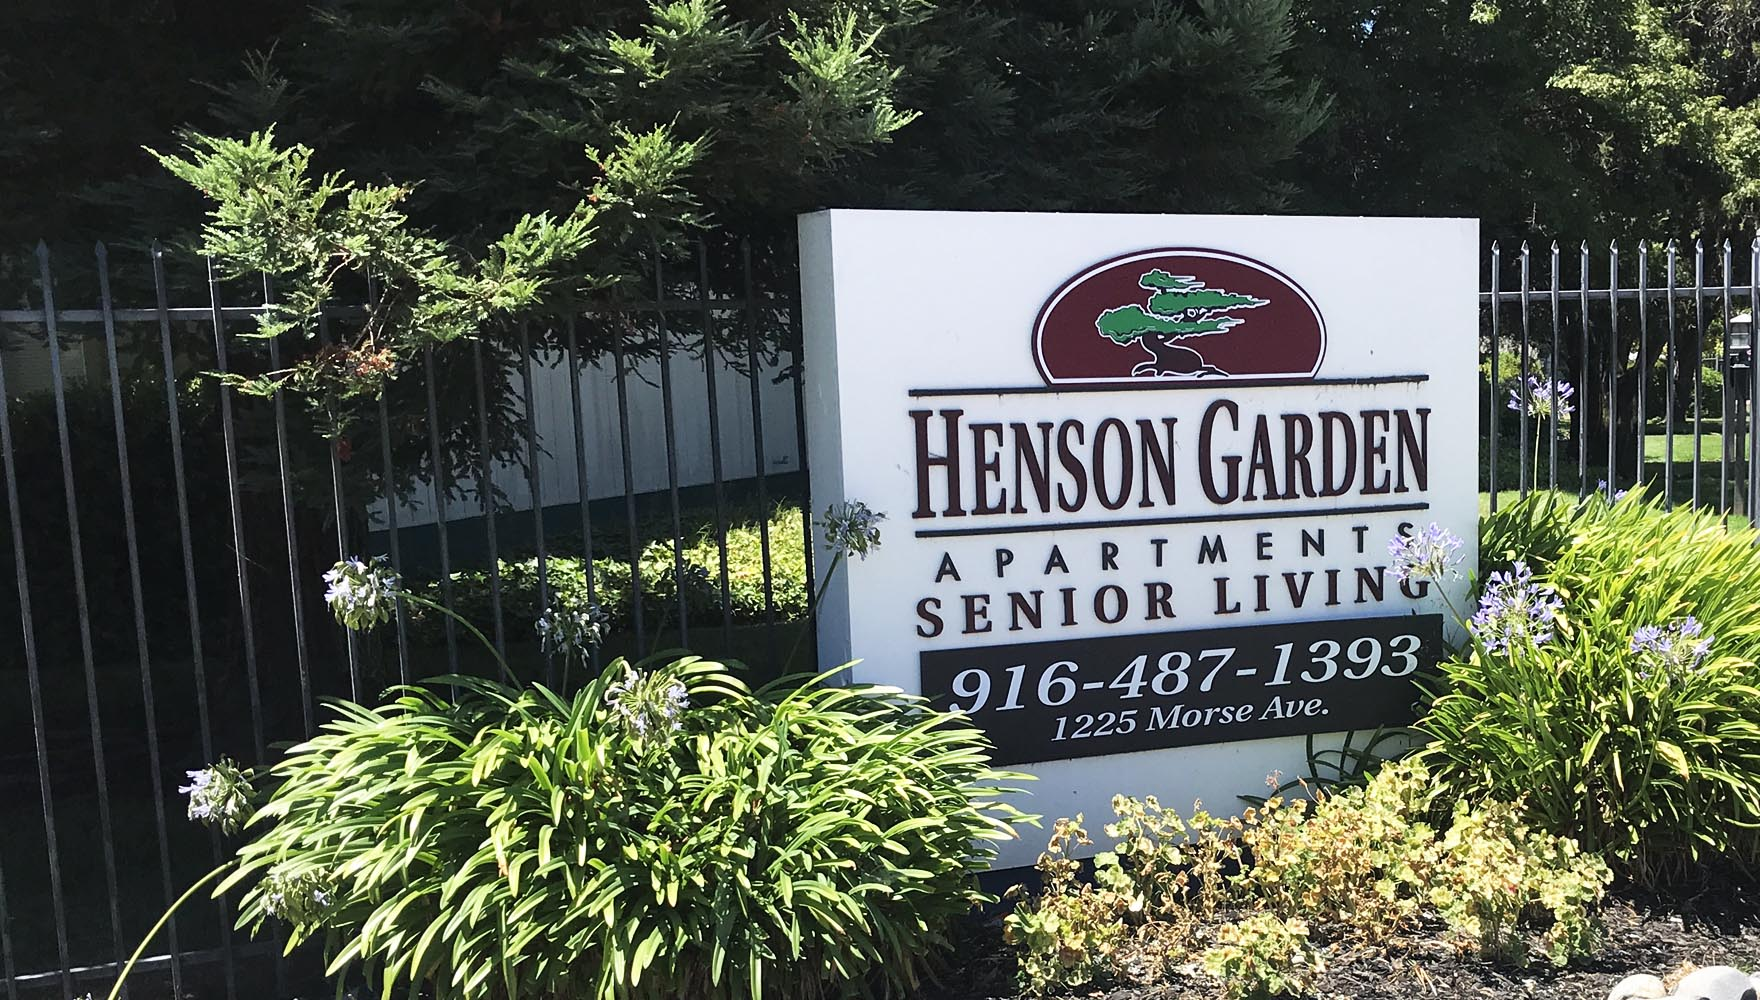 Henson Garden Apartments